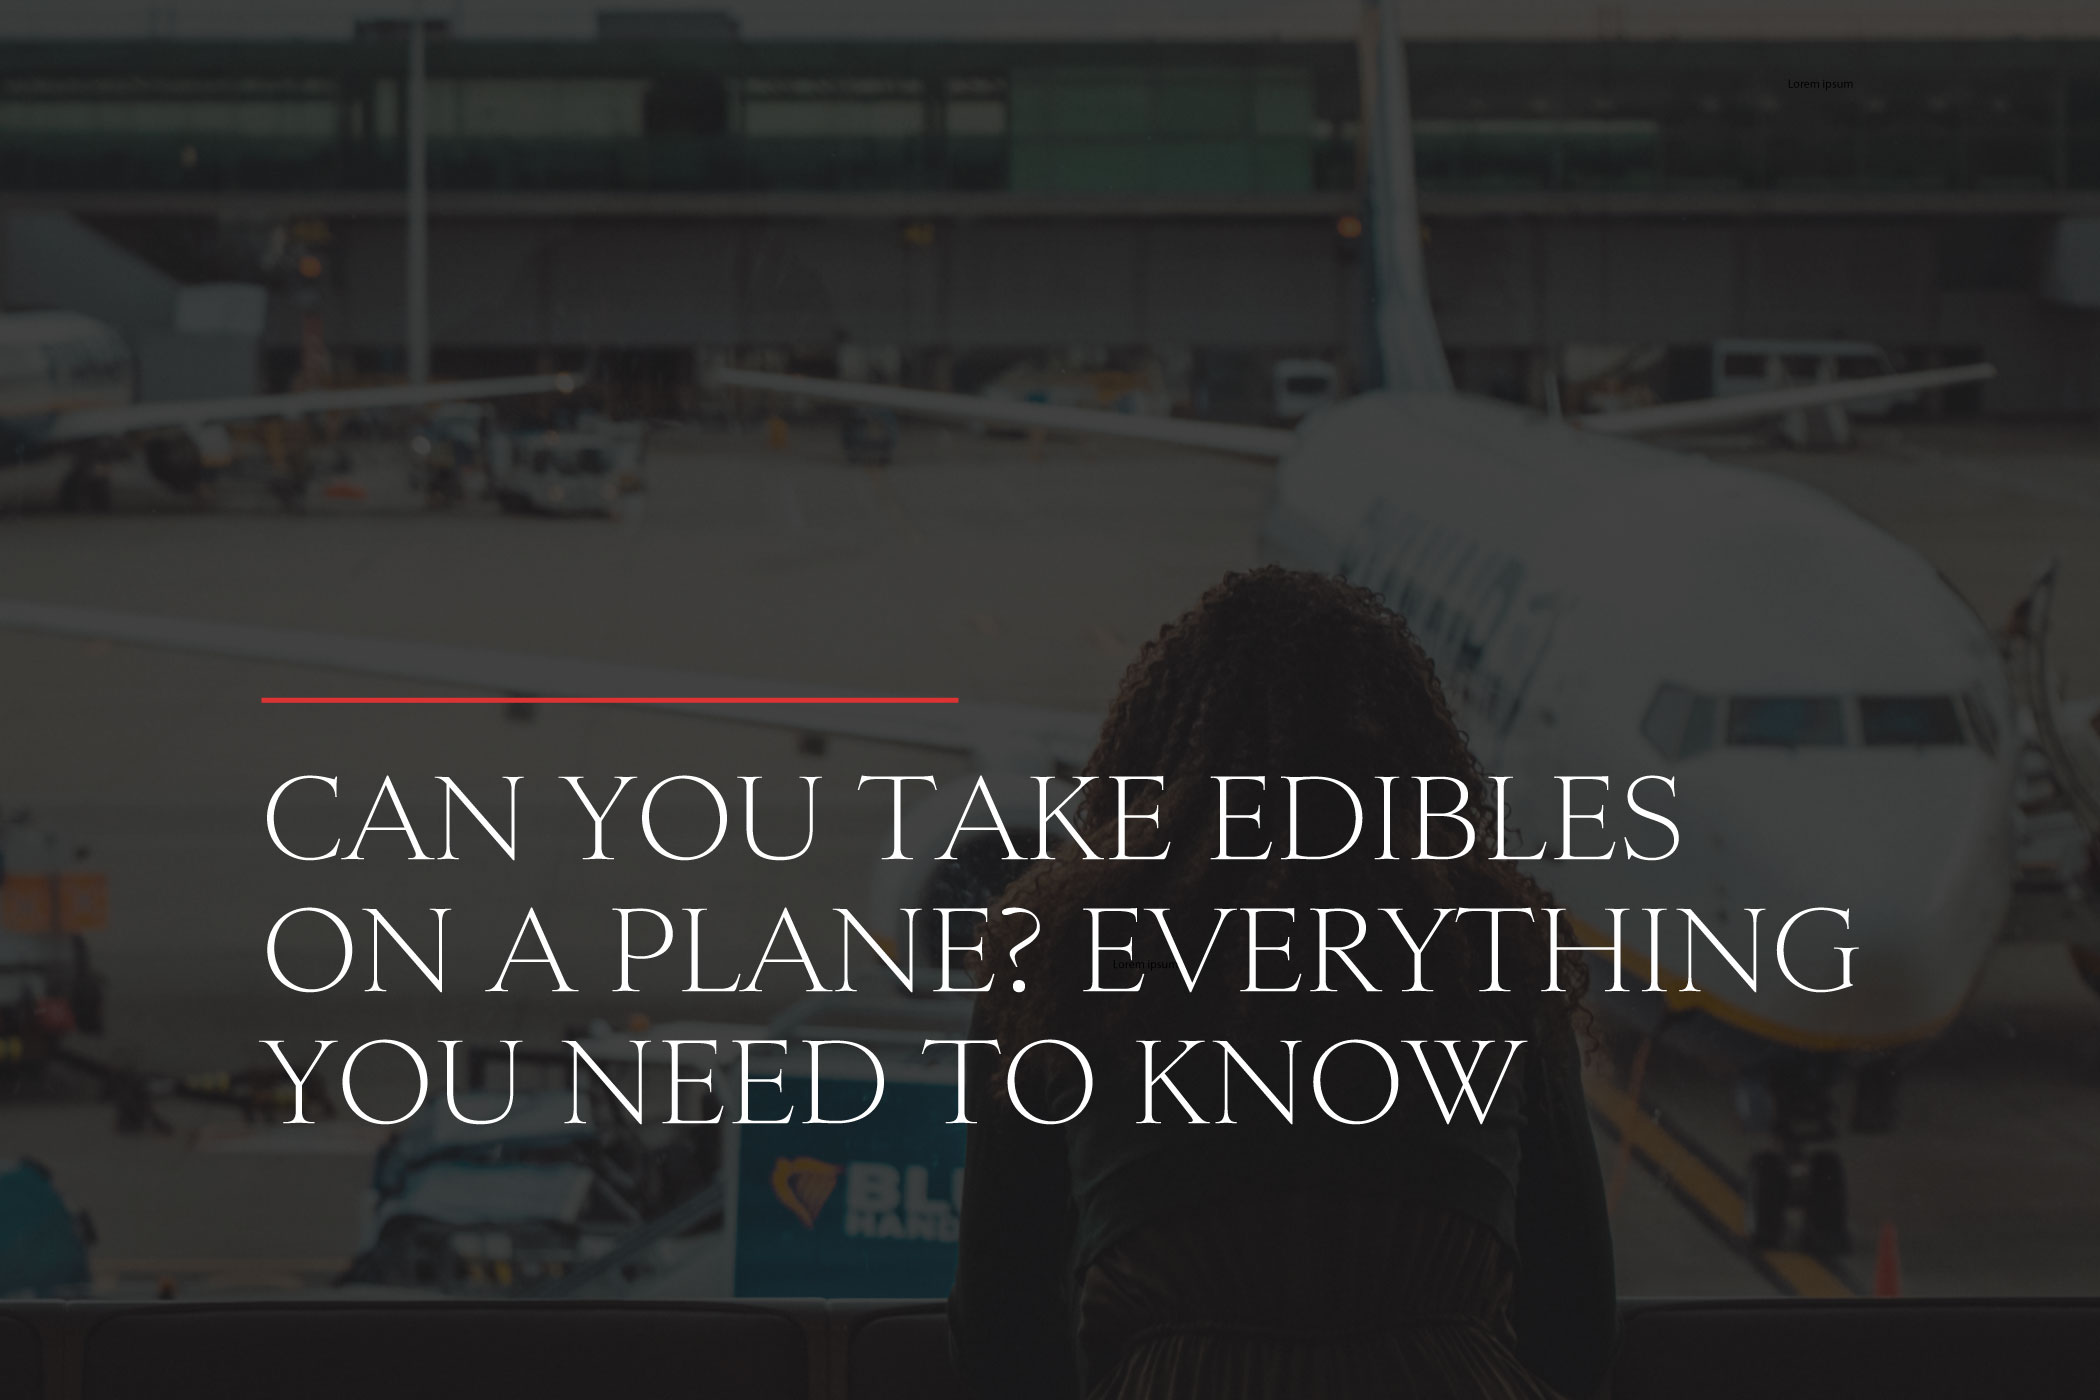 Can you take edibles on a plane?